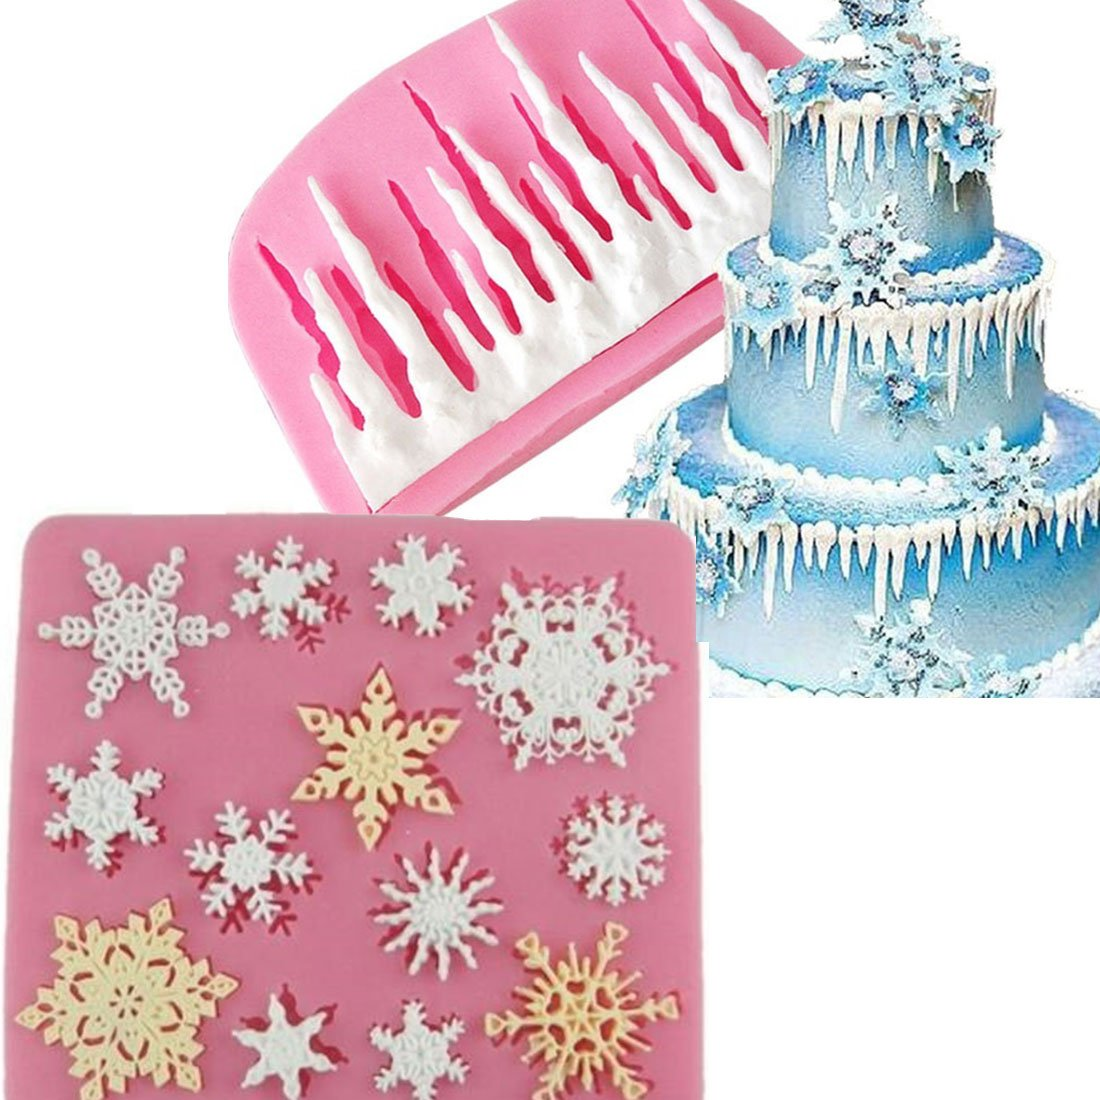 Anyana 3D Christmas Icicles mold cold ice Silicone Cupcake Baking Molds mini Snowflake Fondant molds Cake Decorating Tools Gumpaste Chocolate Candy Clay Moulds Non stick easy to use